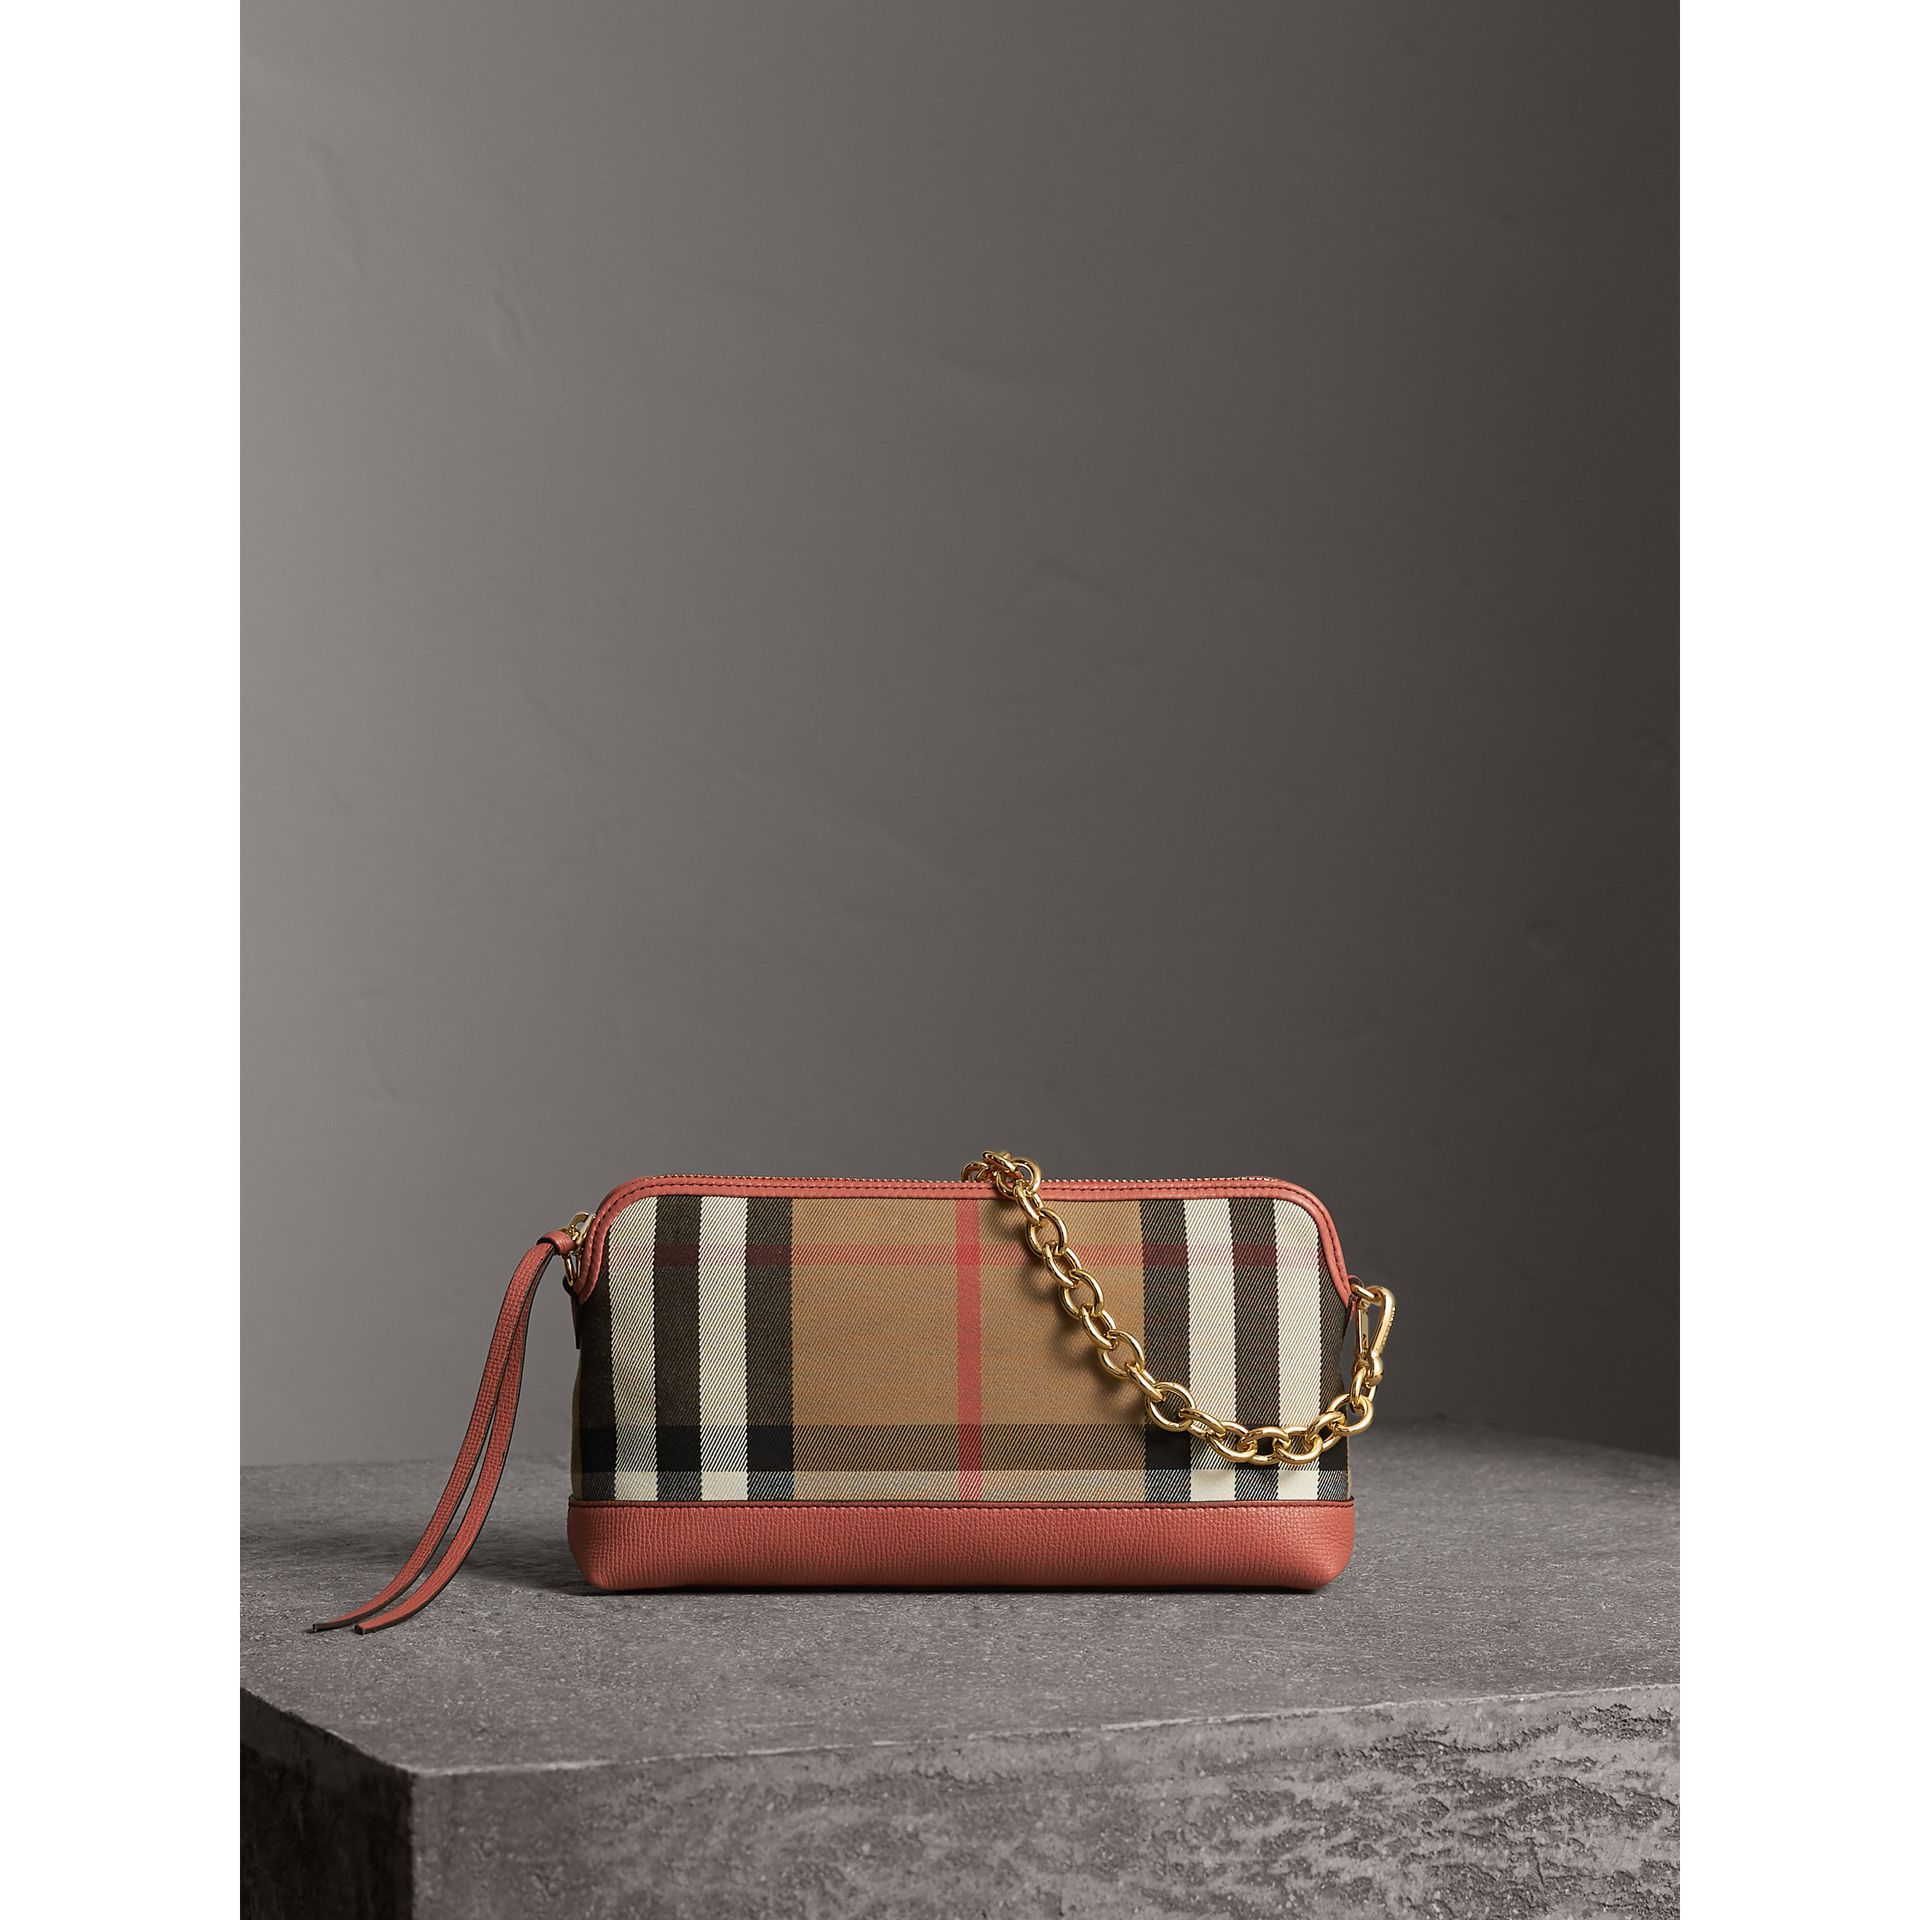 House Check and Leather Clutch Bag in Cinnamon Red - Women | Burberry Singapore - gallery image 1